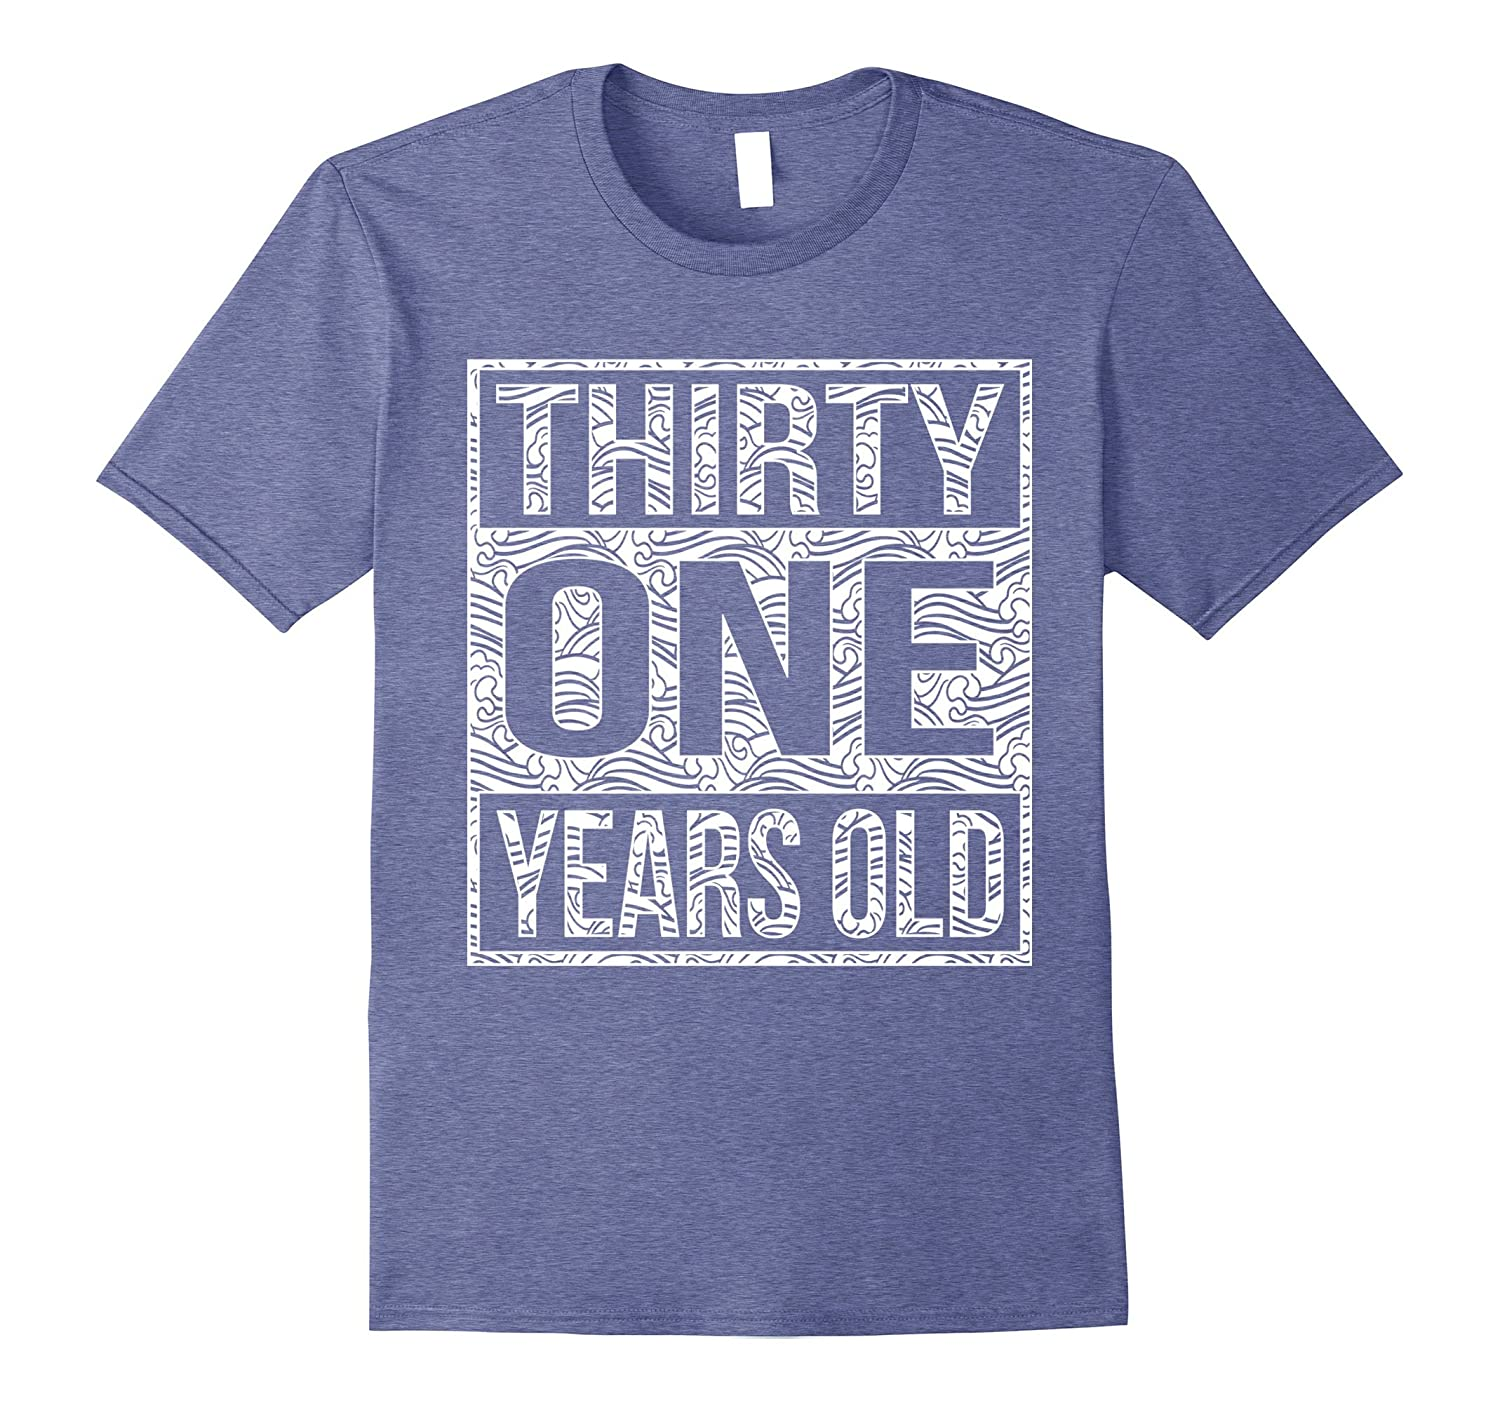 31 Years Old 31st Birthday Shirt Teevkd